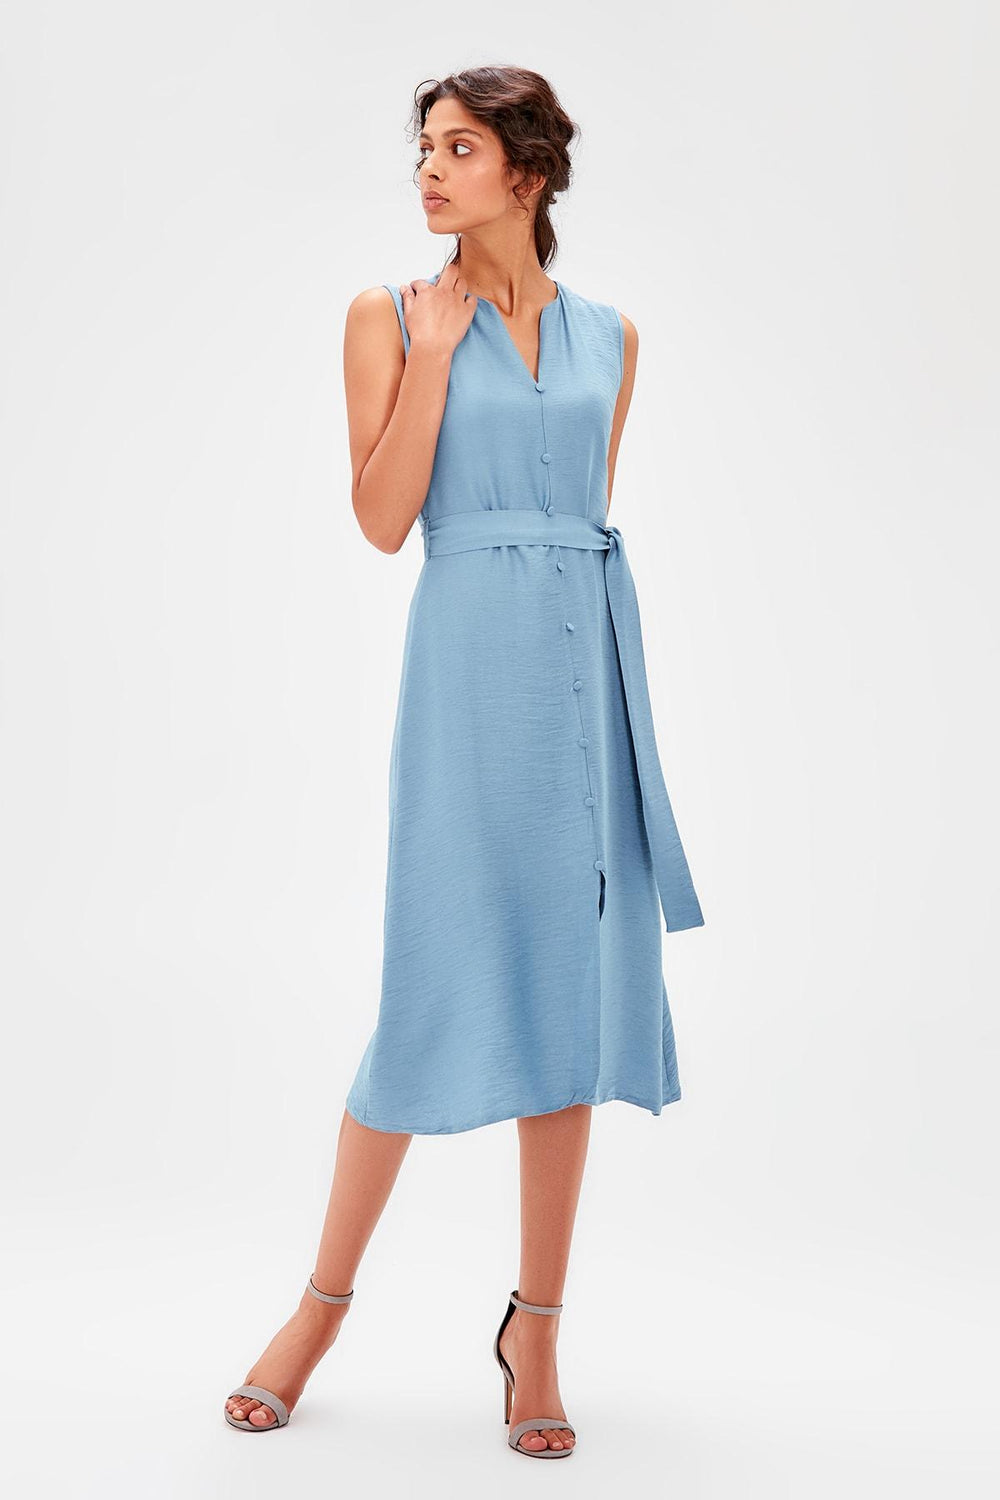 Miss Zut Miss Zut Blue covered Buttoned Dress Miss Zut &CO